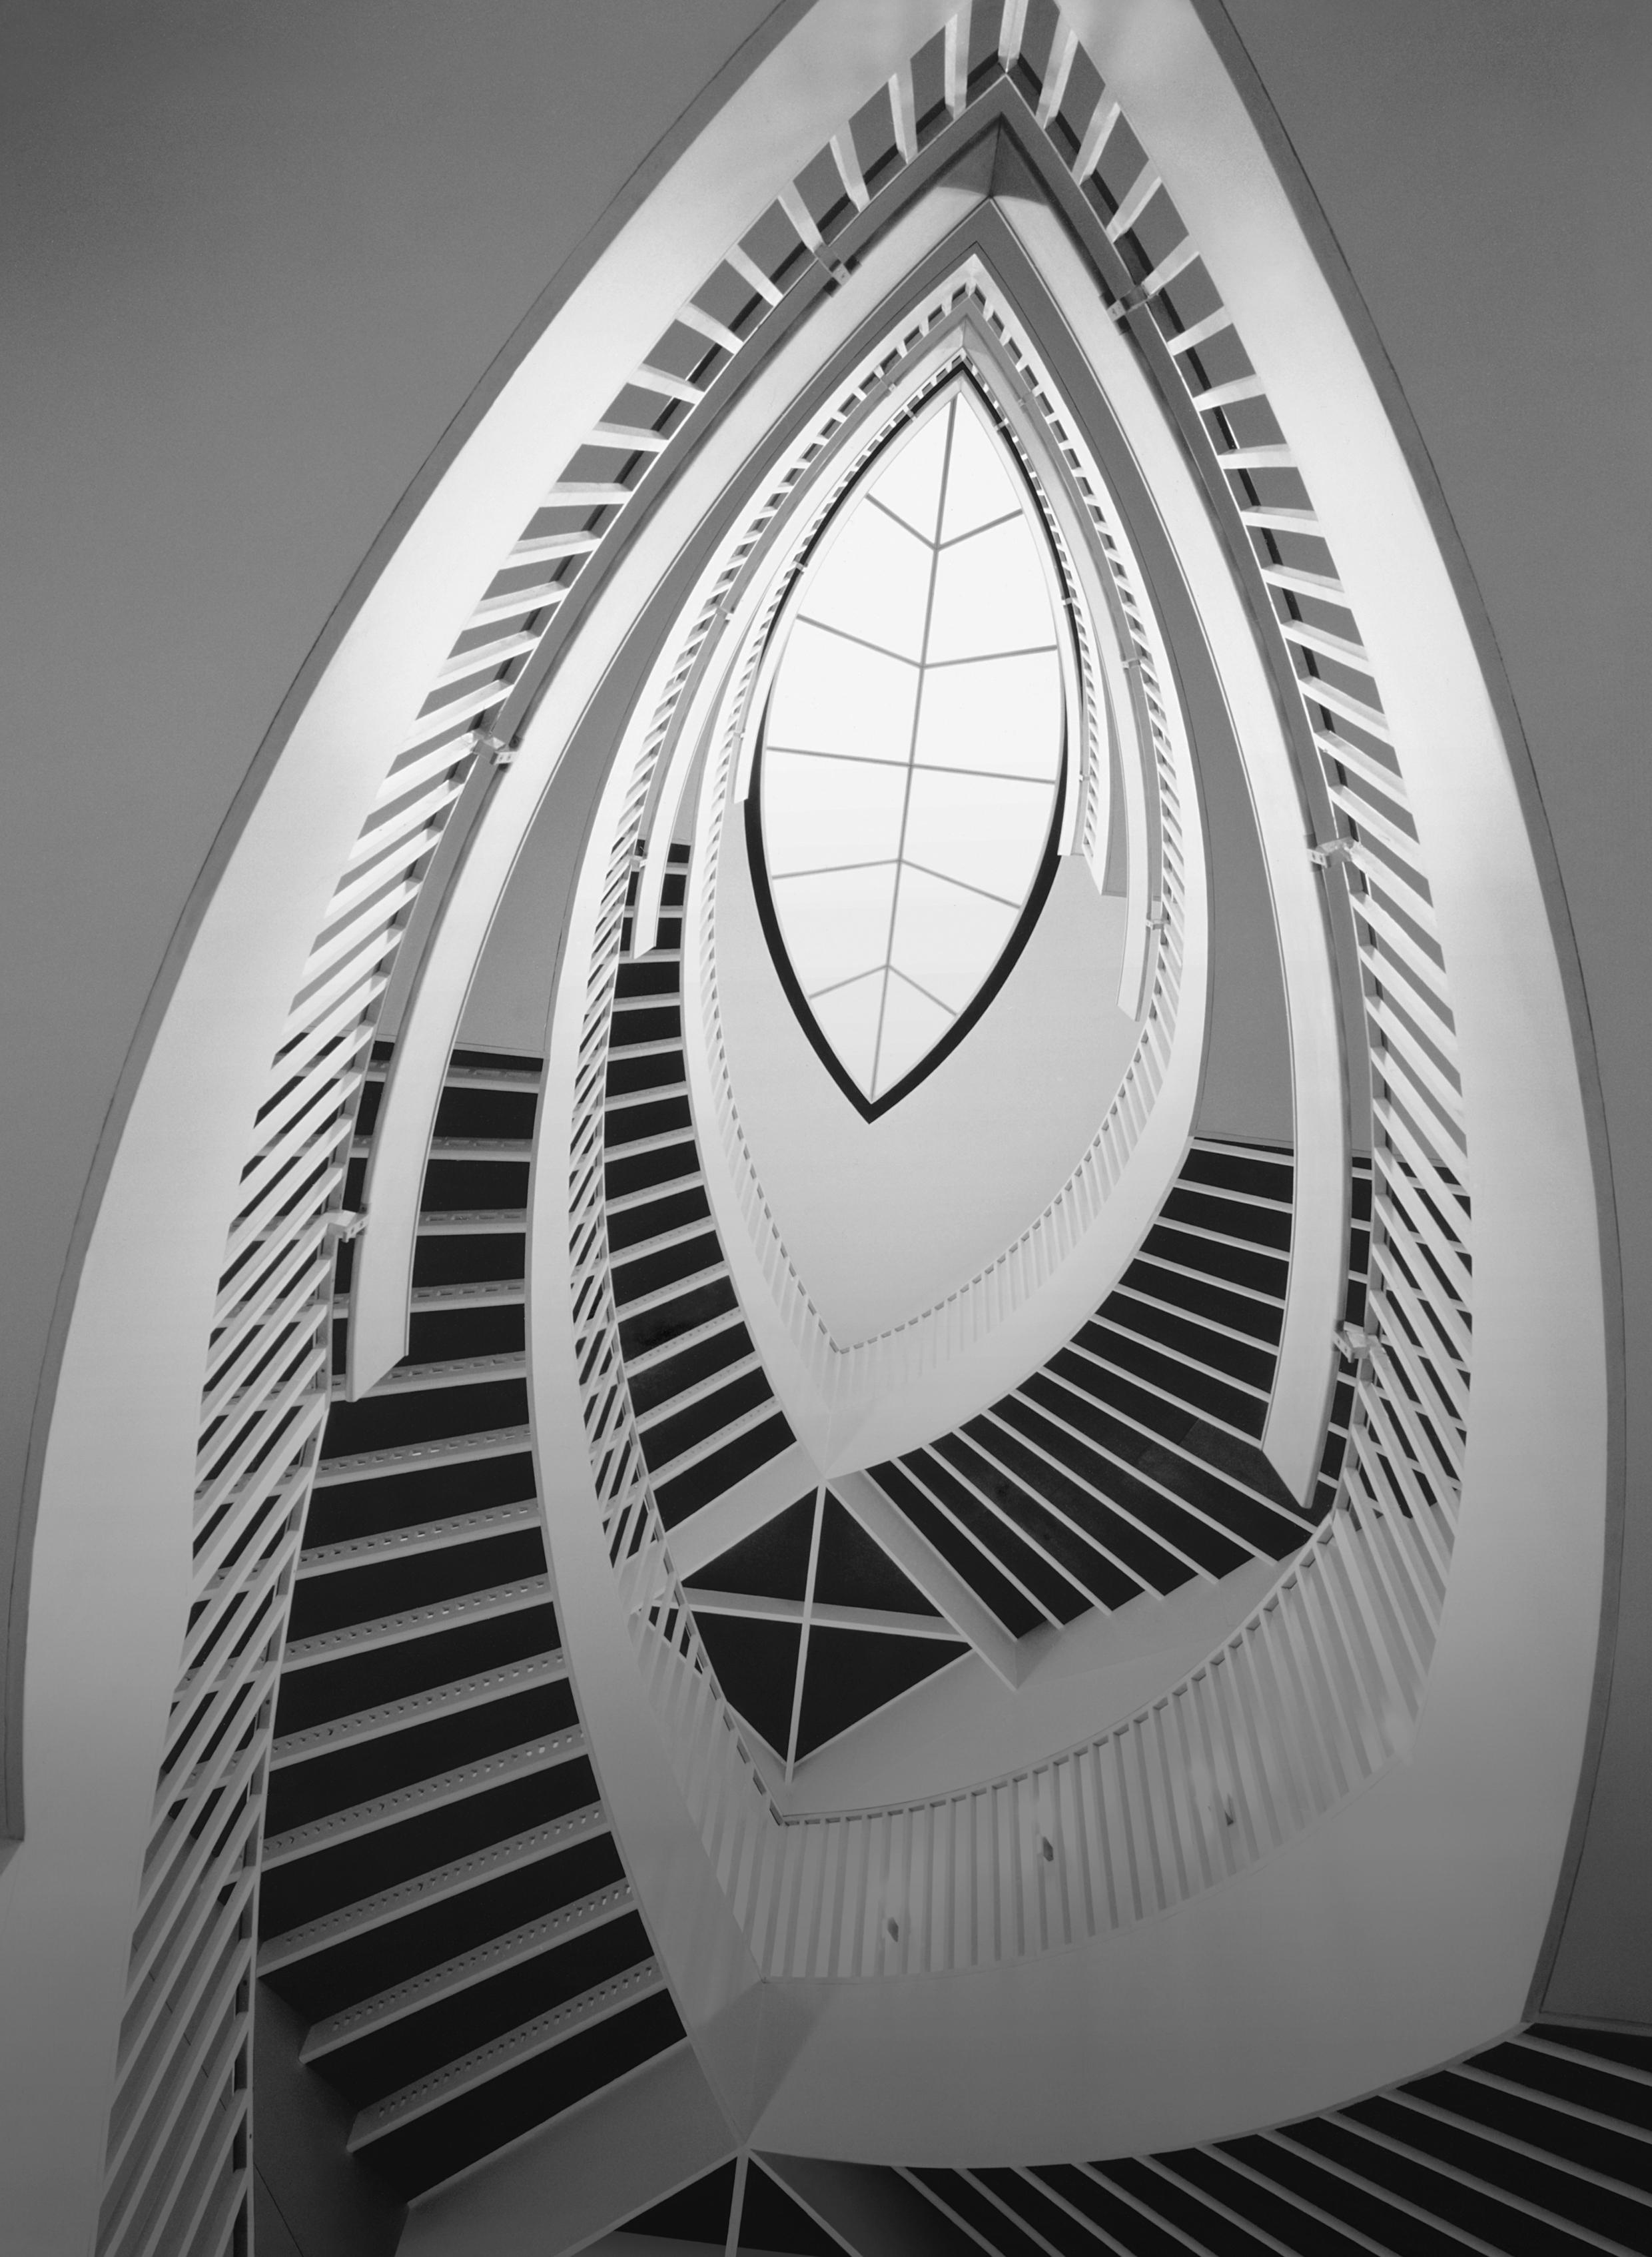 View of the MCA's ovular spiral staircase, from the first floor looking up